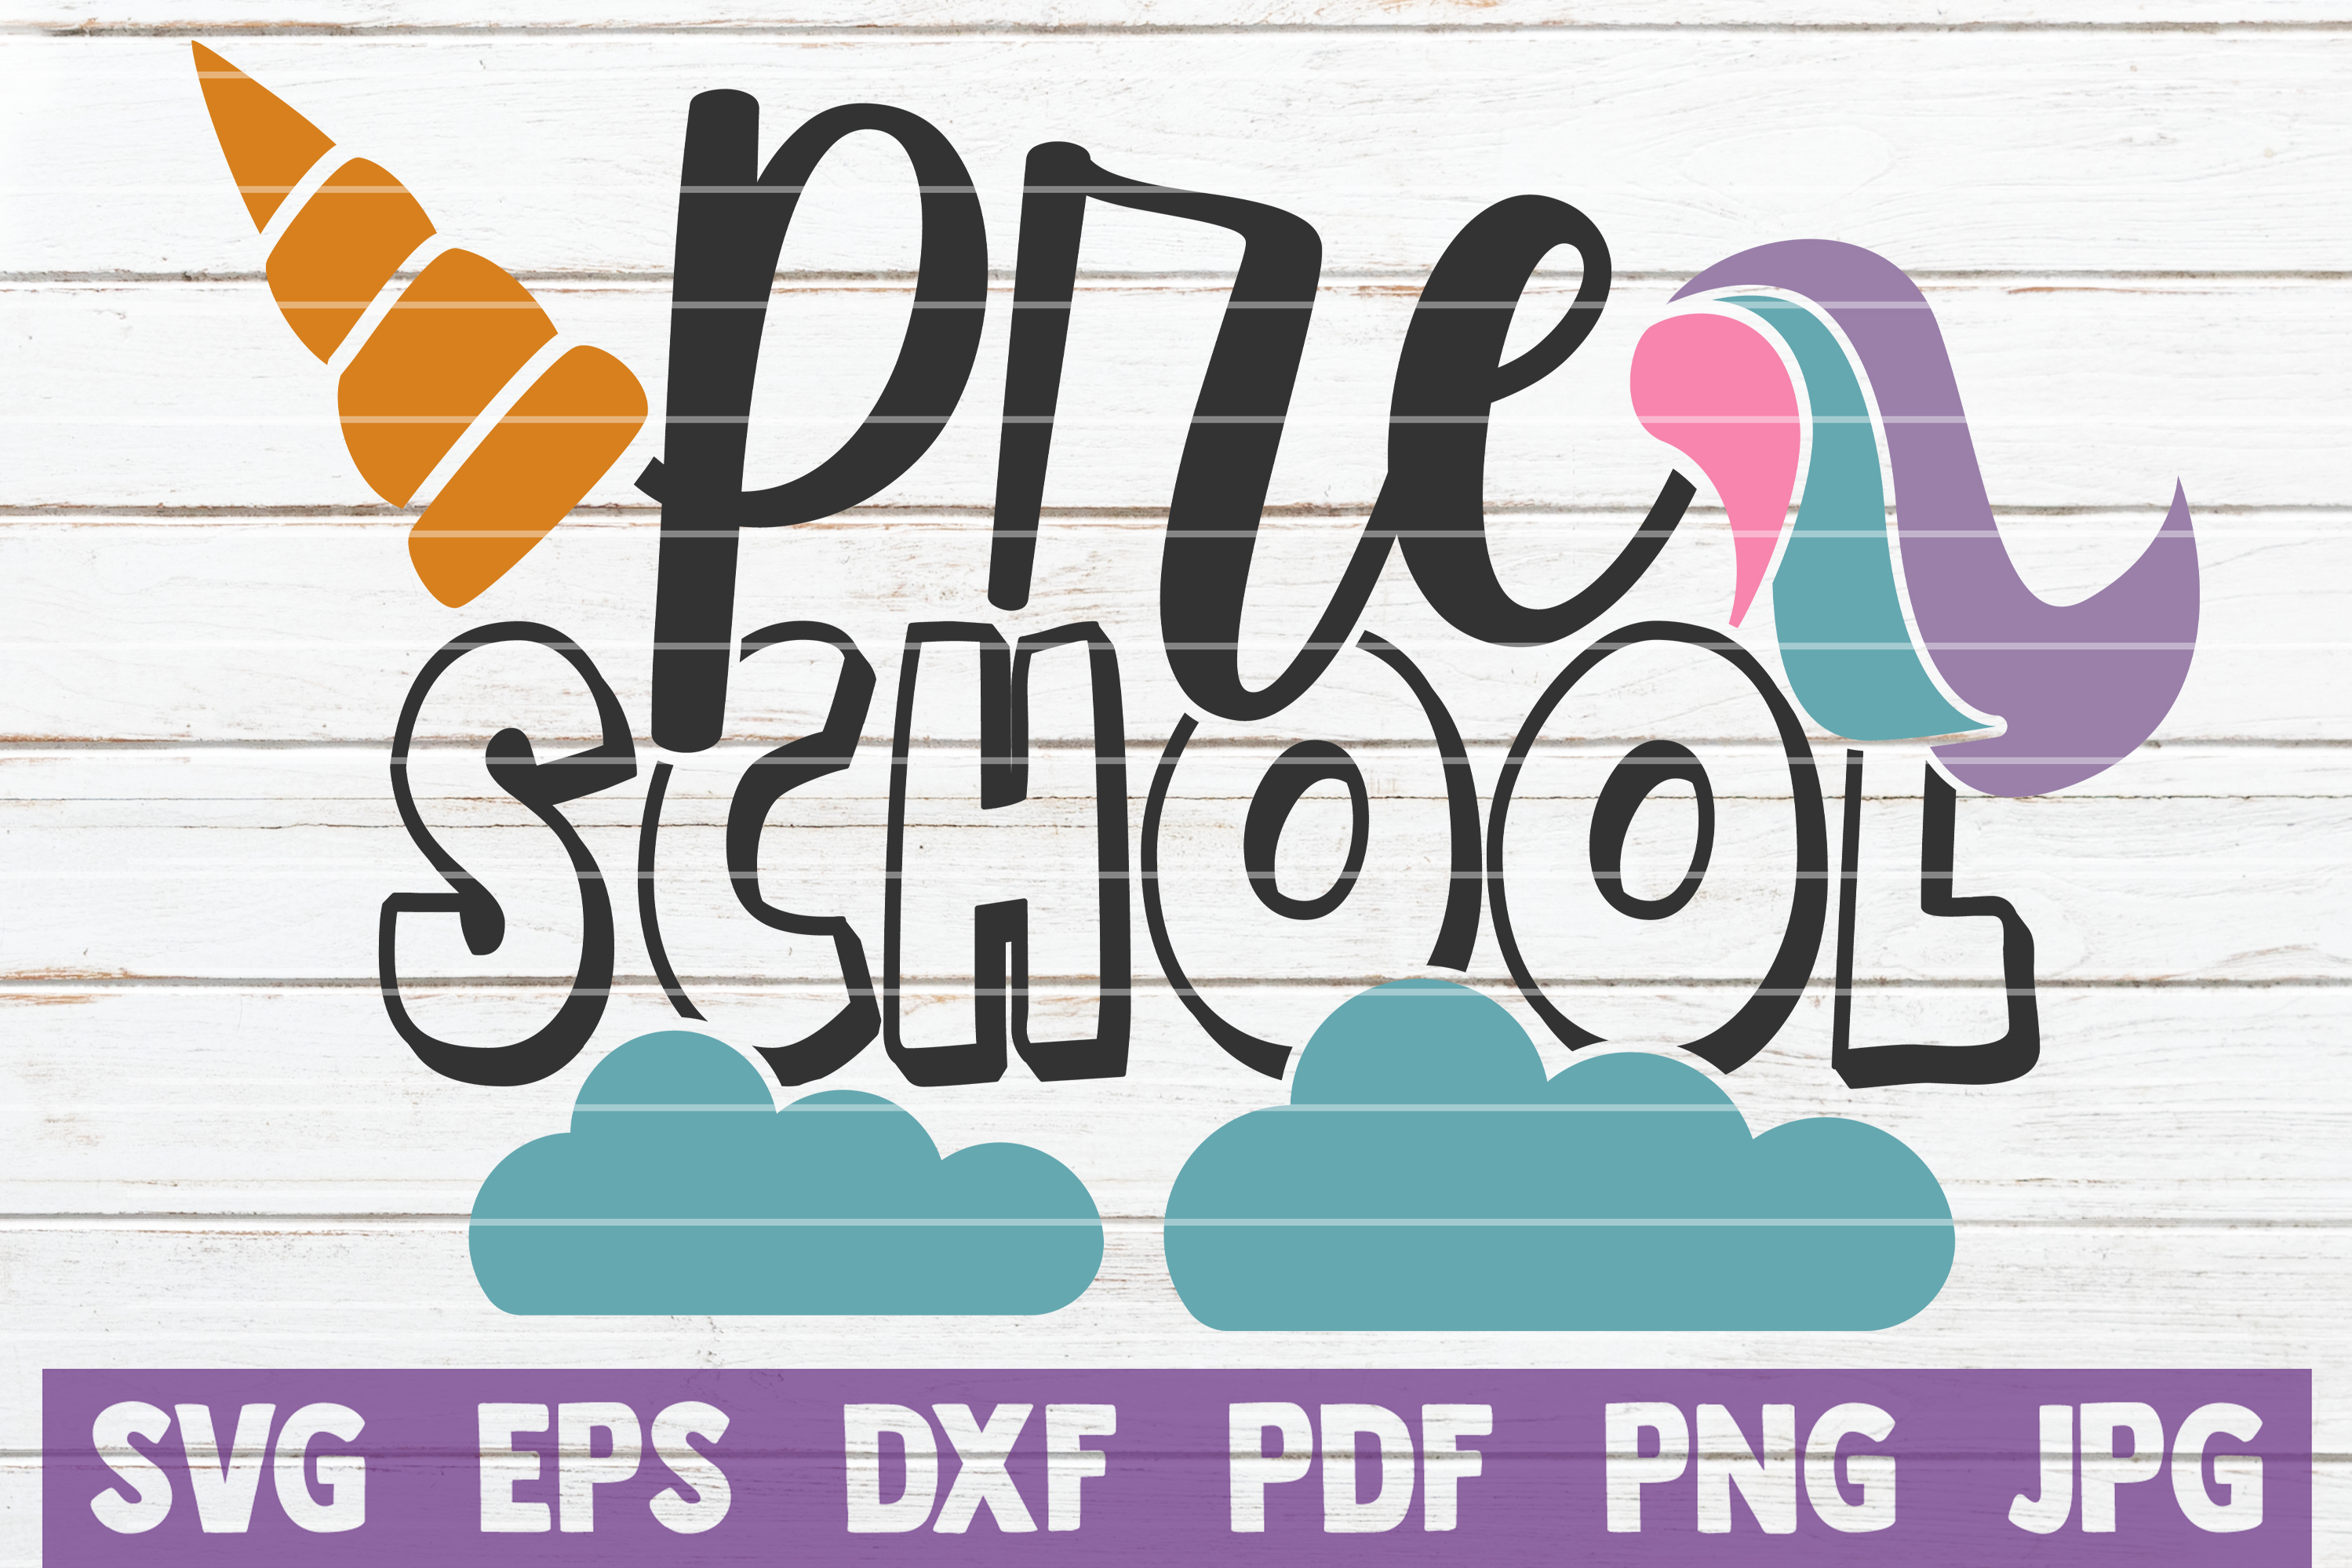 Download Free Preschool Unicorn Graphic By Mintymarshmallows Creative Fabrica for Cricut Explore, Silhouette and other cutting machines.